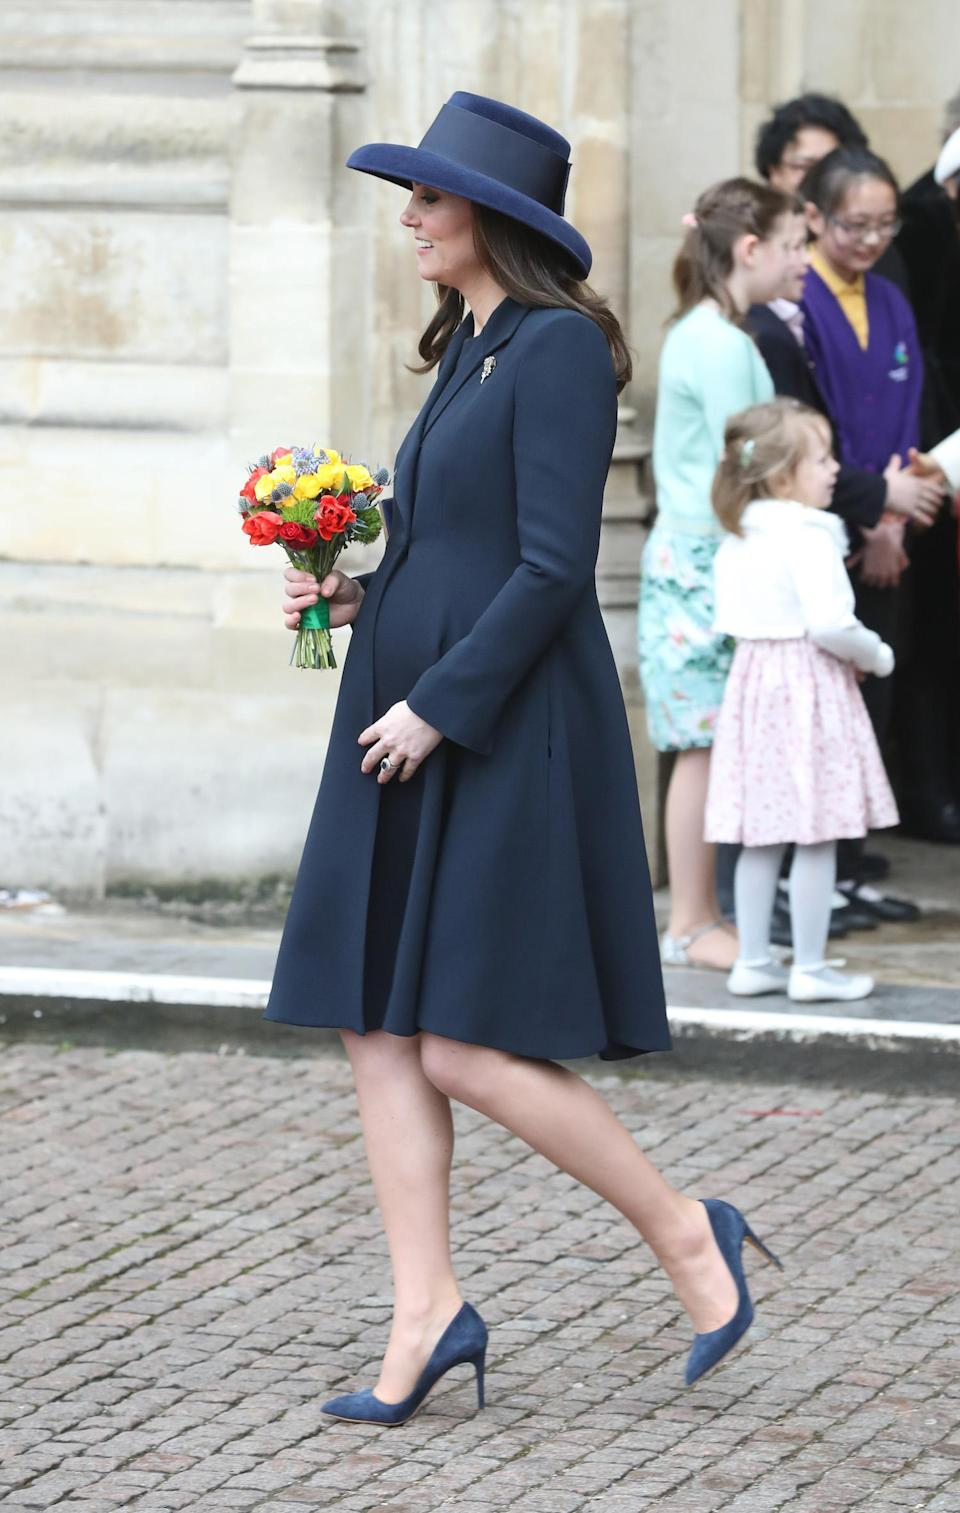 <p>Kate Middleton wears a navy coat and matching hat and heels at the 2018 Commonwealth Day service at Westminster Abbey on March 12, 2018, in London. (Photo: Getty Images) </p>